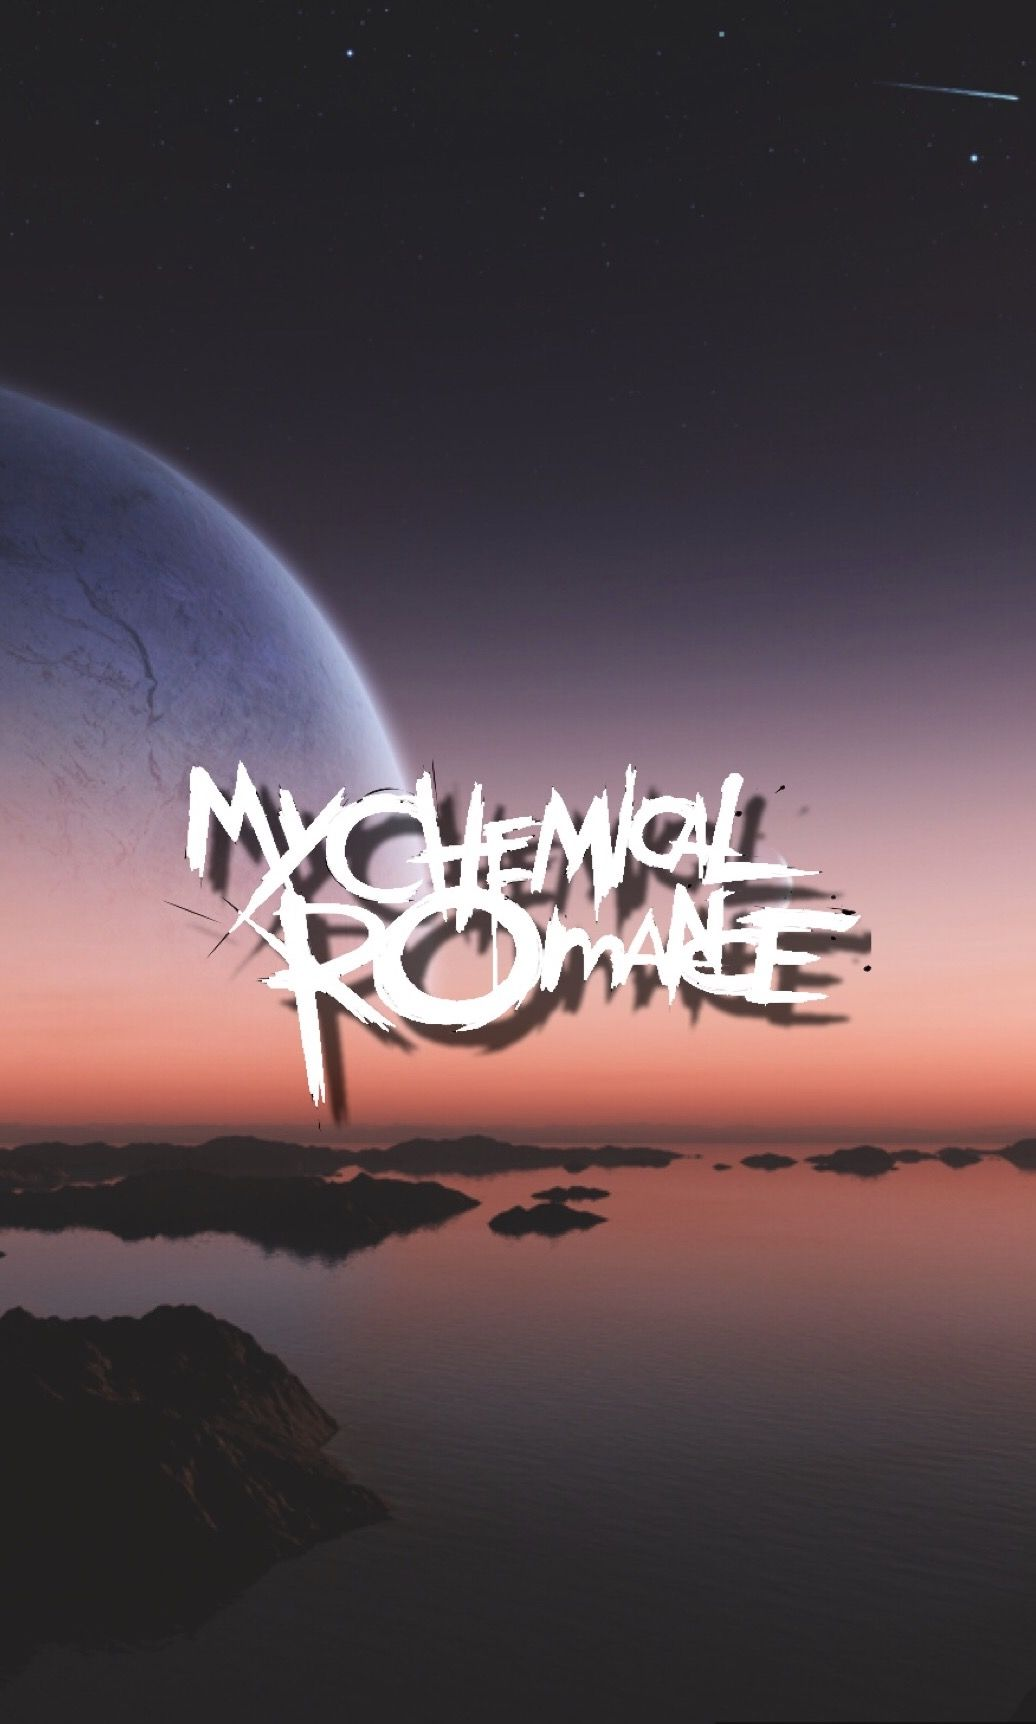 My Chemical Romance Background My Chemical Romance Wallpaper My